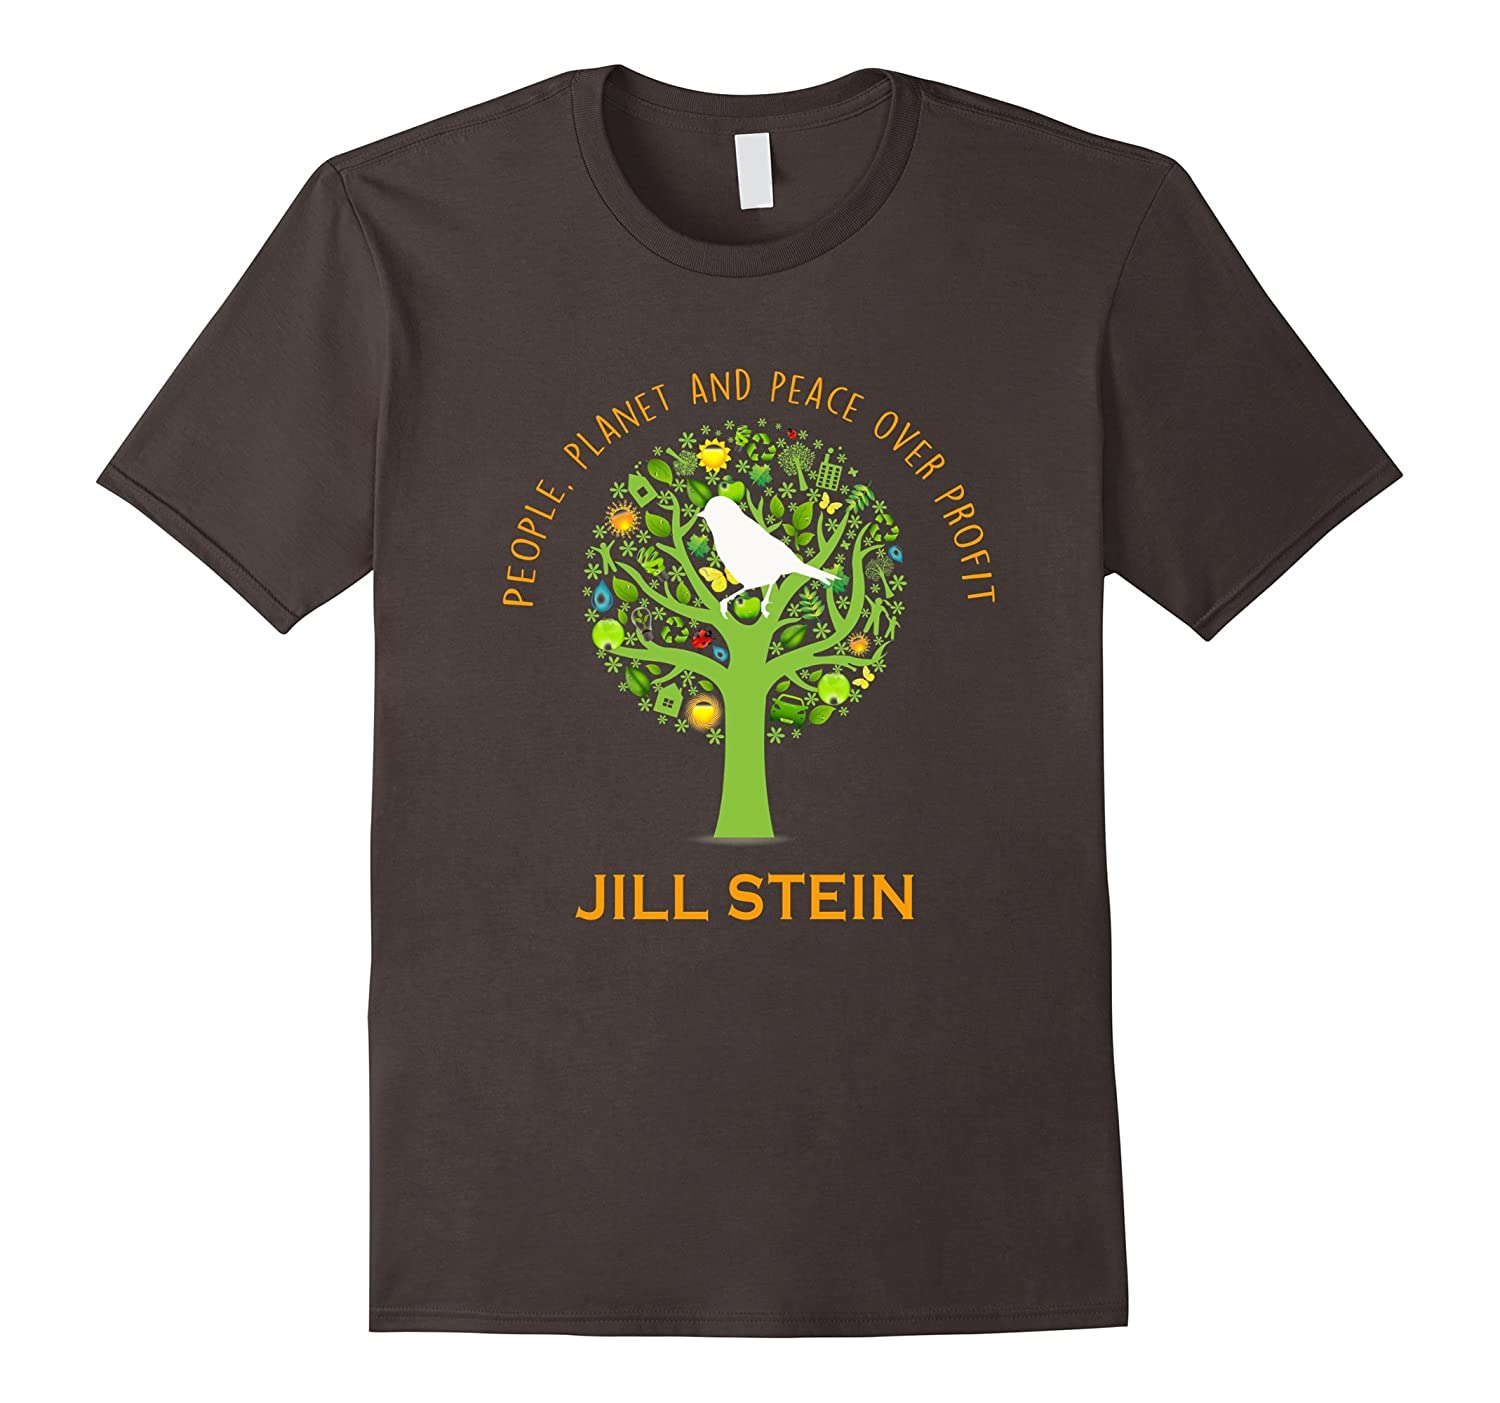 Jill Stein - People planet and peace over profit 2016-BN